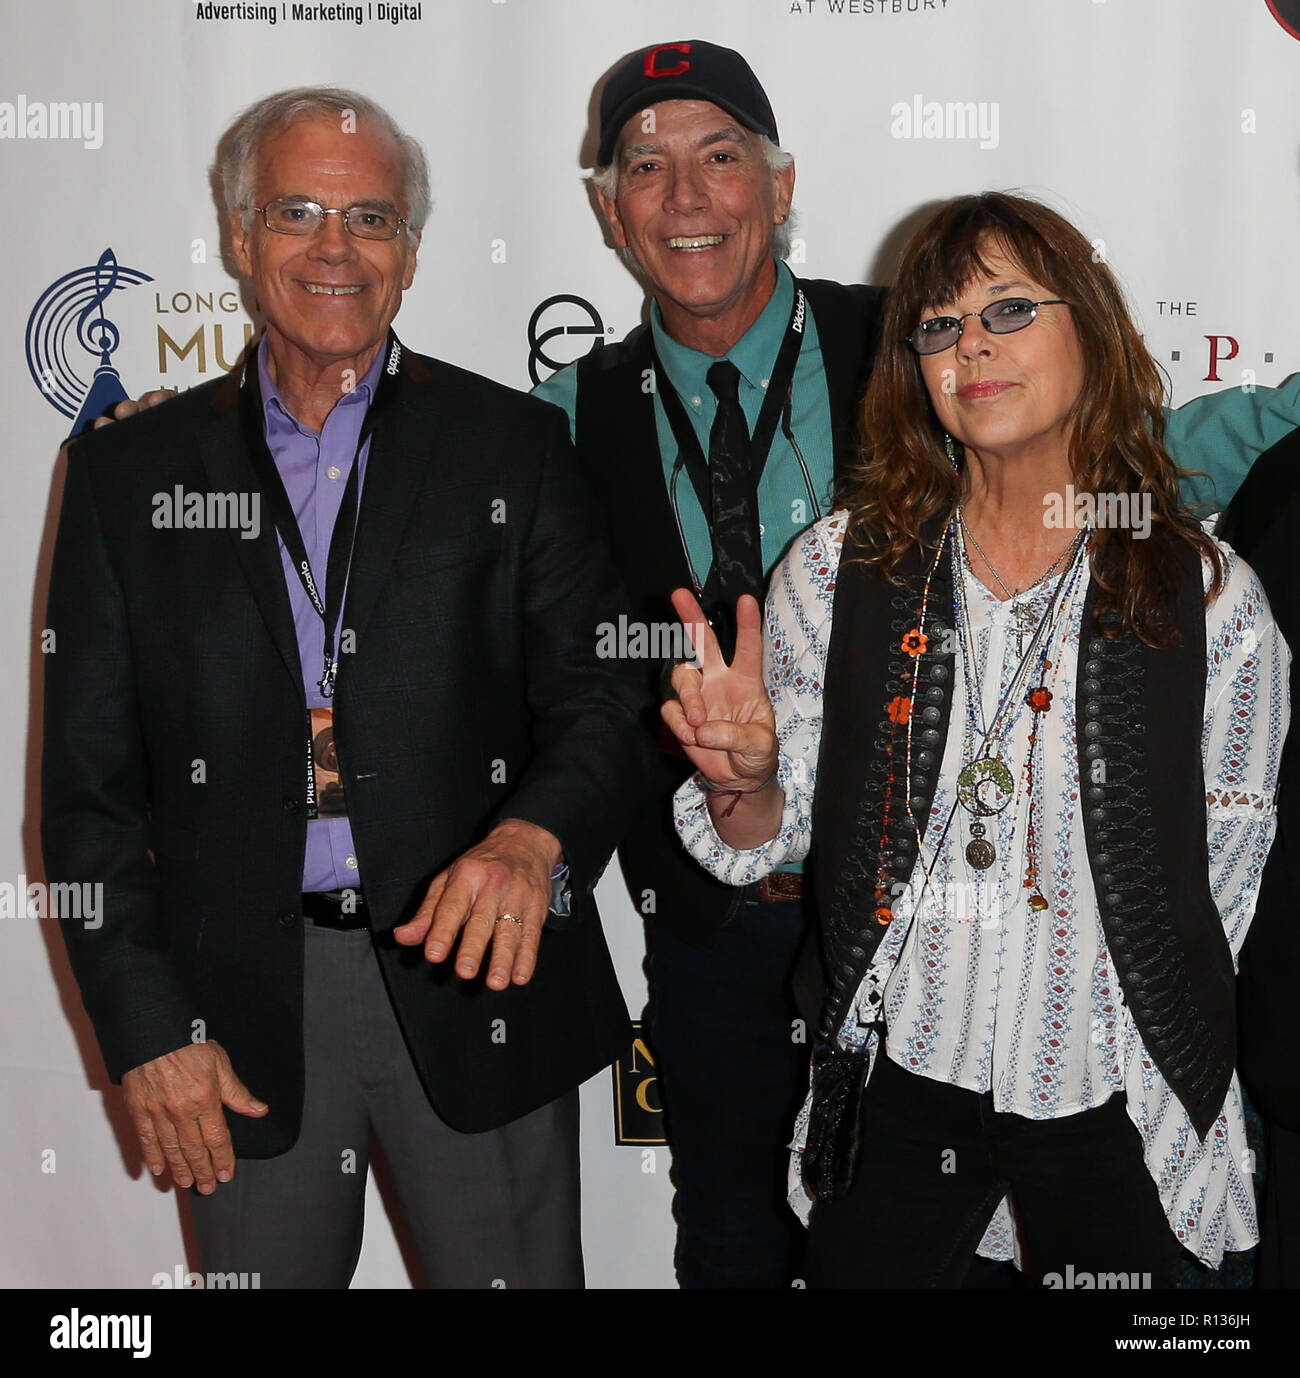 Westbury, New York, USA. 8th Nov 2018. (L-R) Paul Cowsill, Bob Cowsill and Susan Cowsill of the Cowsills attend the 2018 Long Island Music Hall of Fame induction ceremony at The Space at Westbury on November 8, 2018 in Westbury, New York. Credit: AKPhoto/Alamy Live News Stock Photo